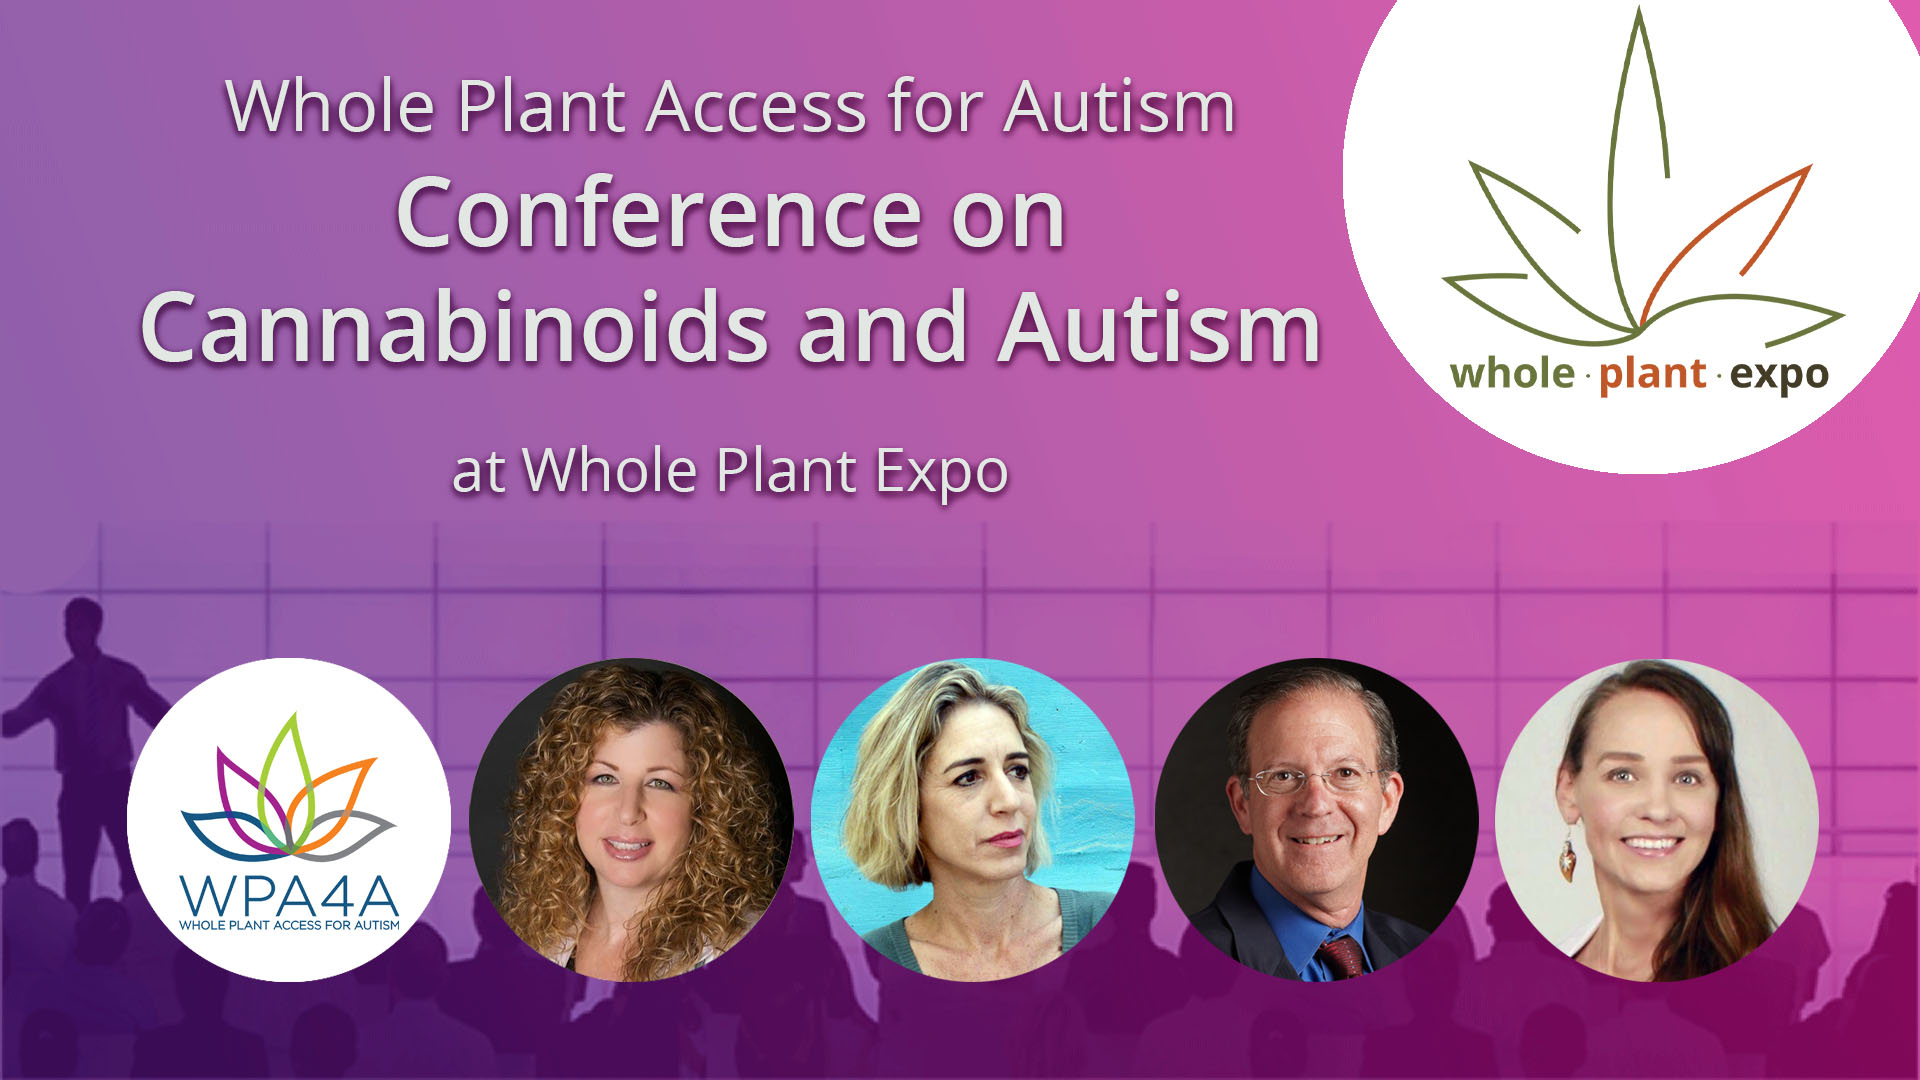 WPA4A Conference on Cannabinoids and Autism